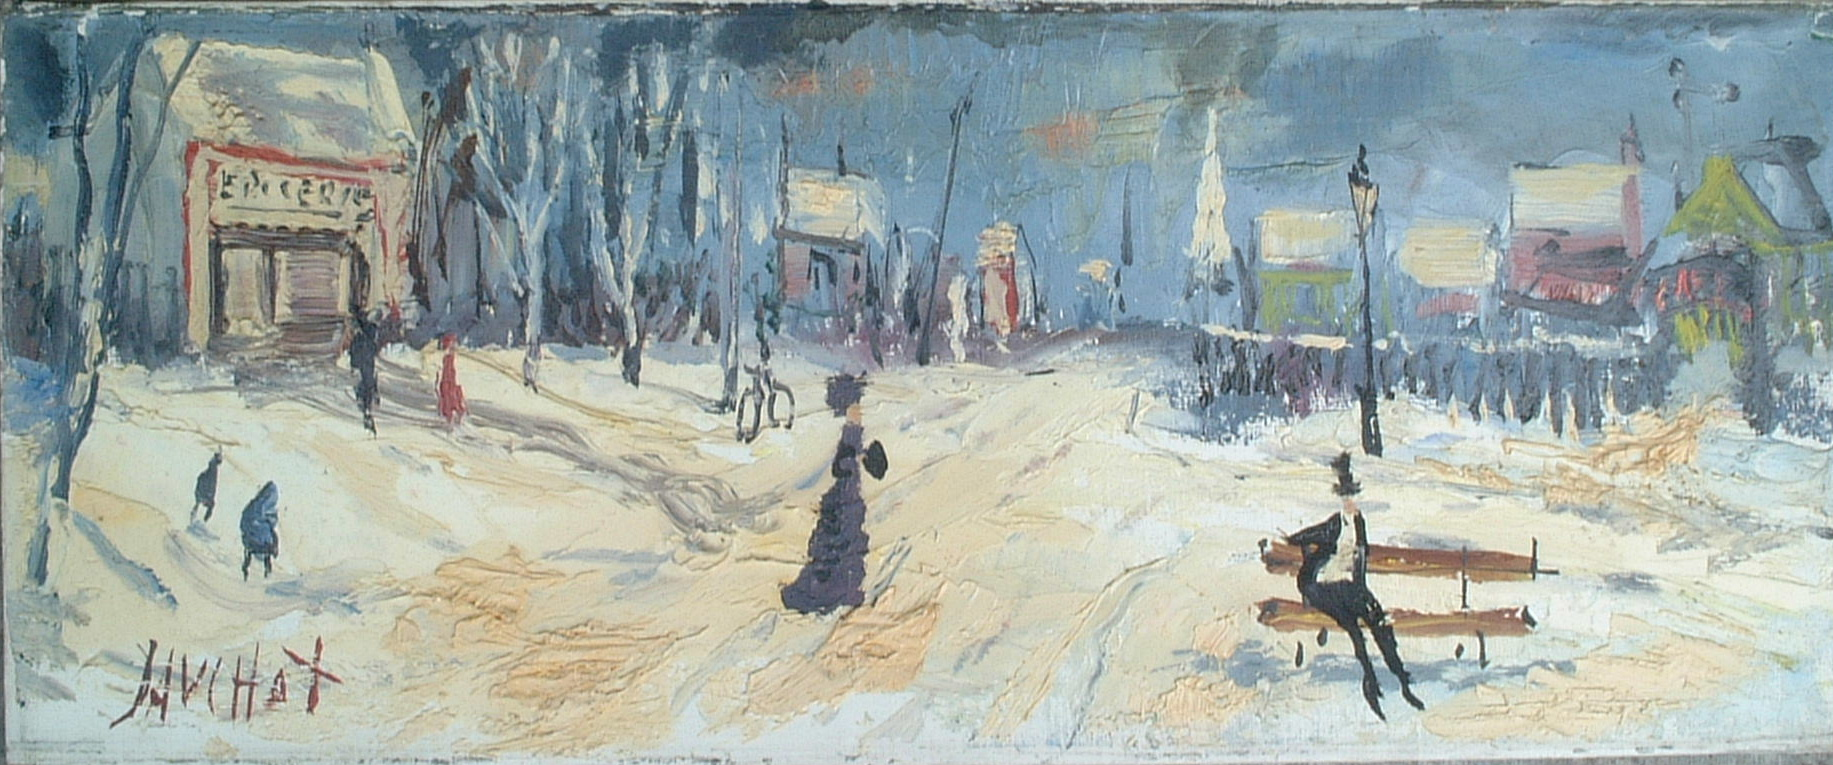 Artist: Gabriel Dauchot Title: The Rendezvous Size: 7.5in x 18.5in